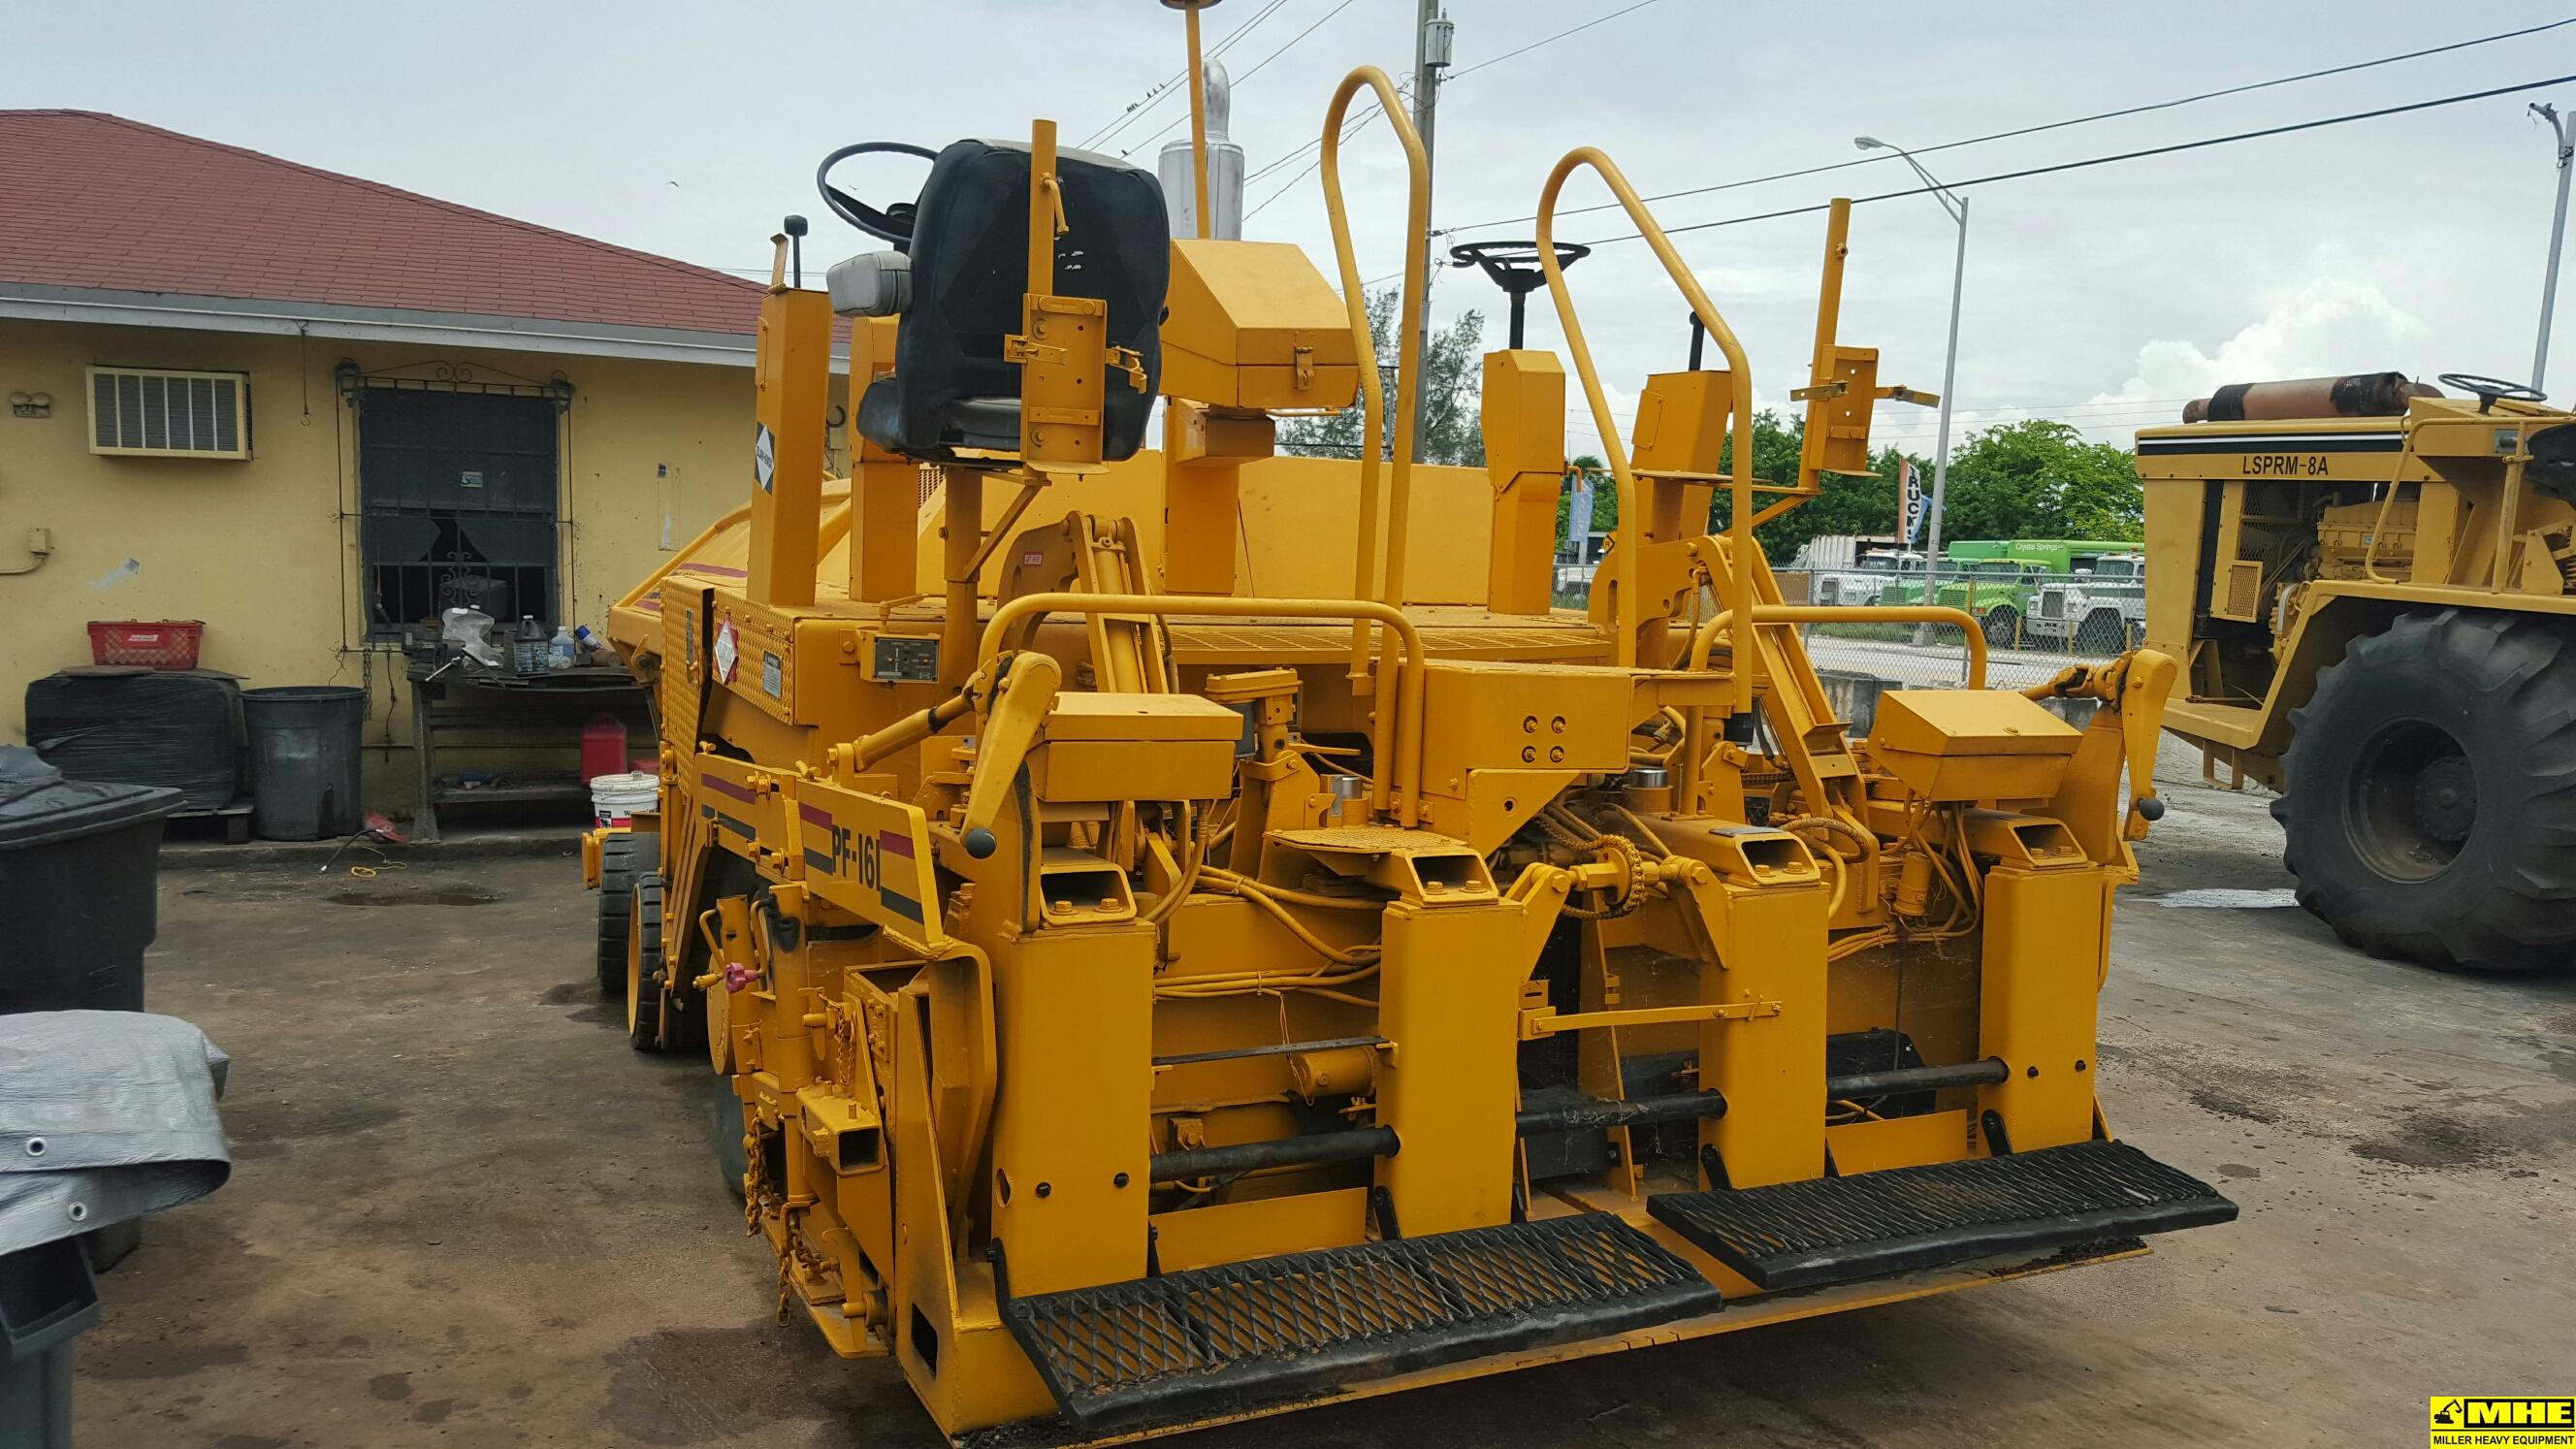 Blaw Knox Pf161 Paver Used Heavy Equipment For Sale